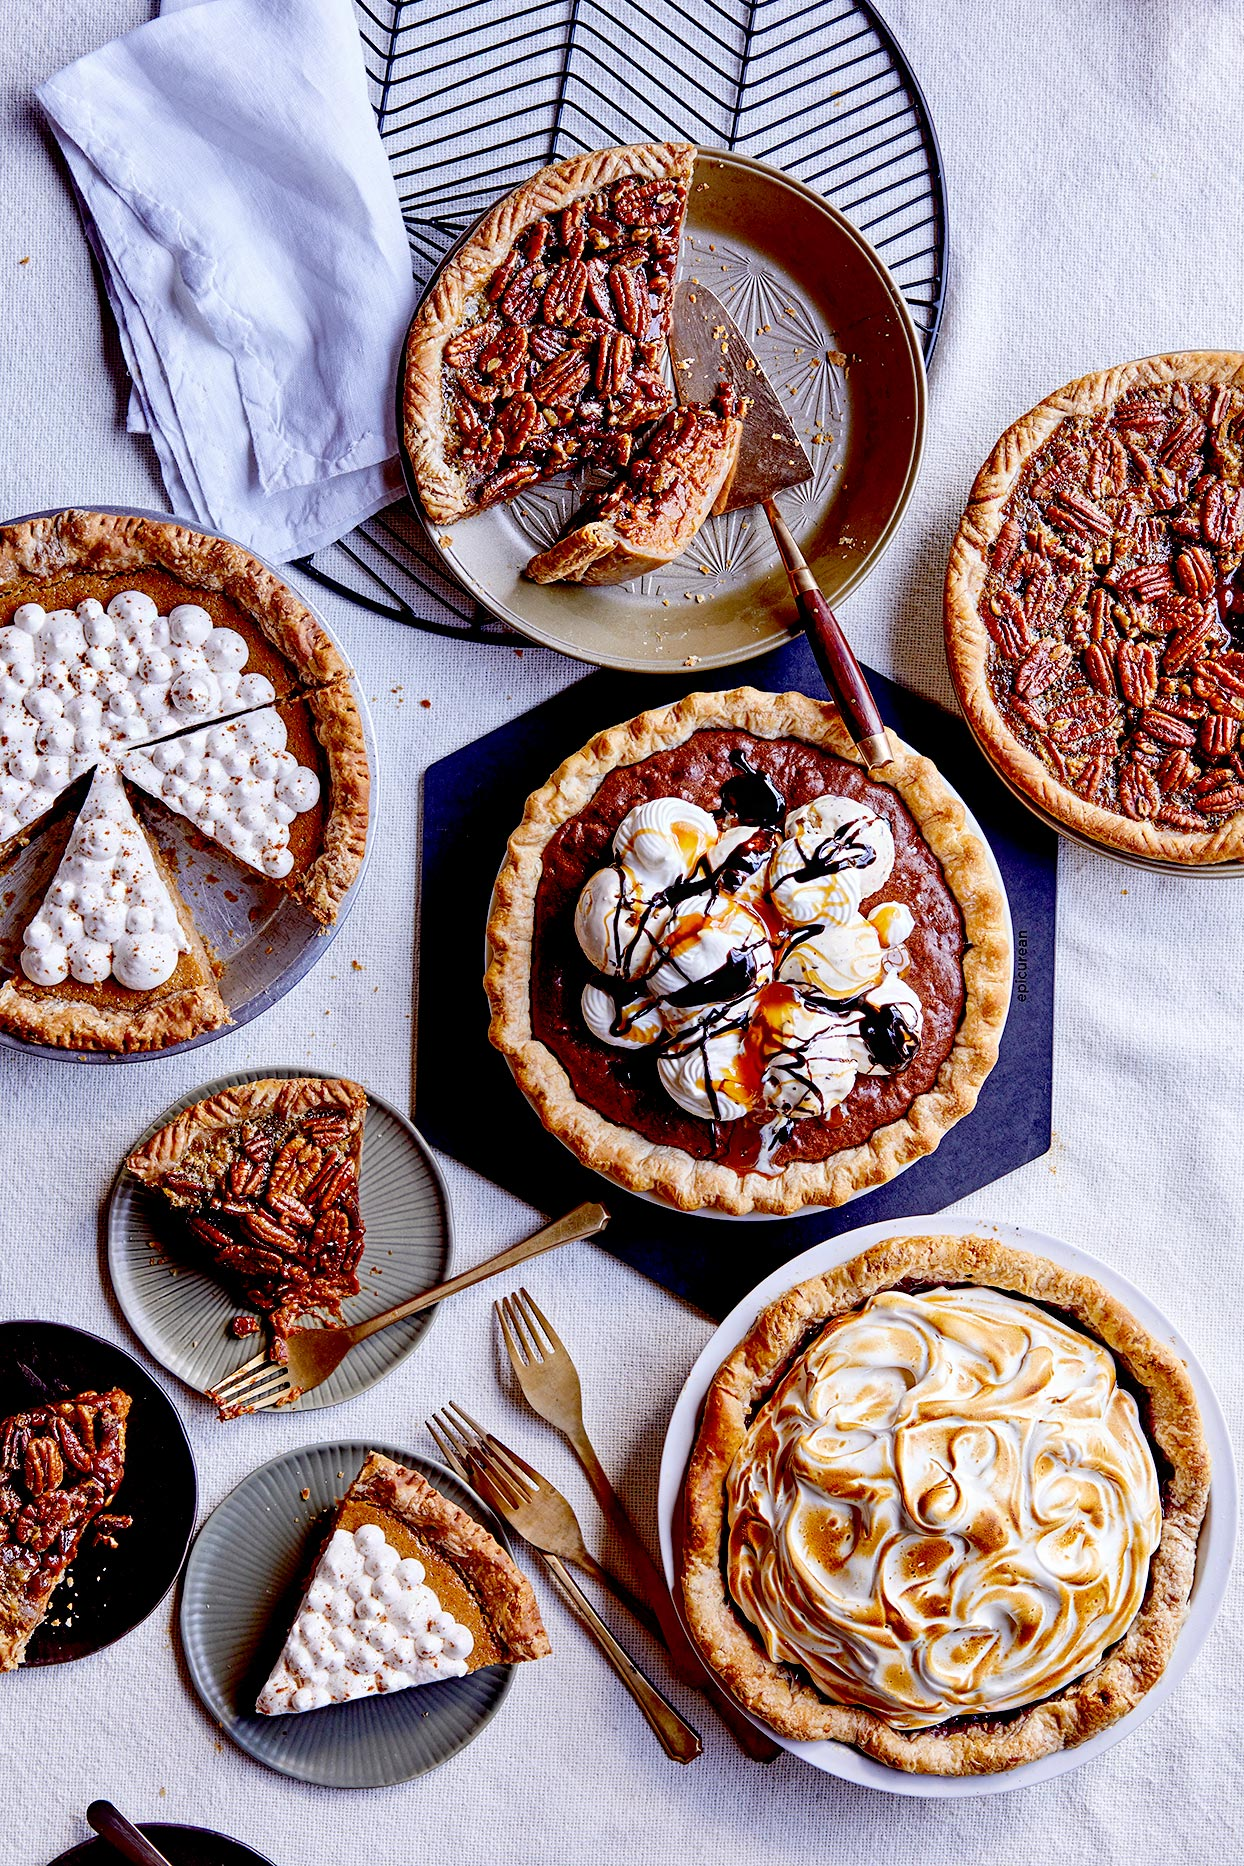 Five pies with slices on plates